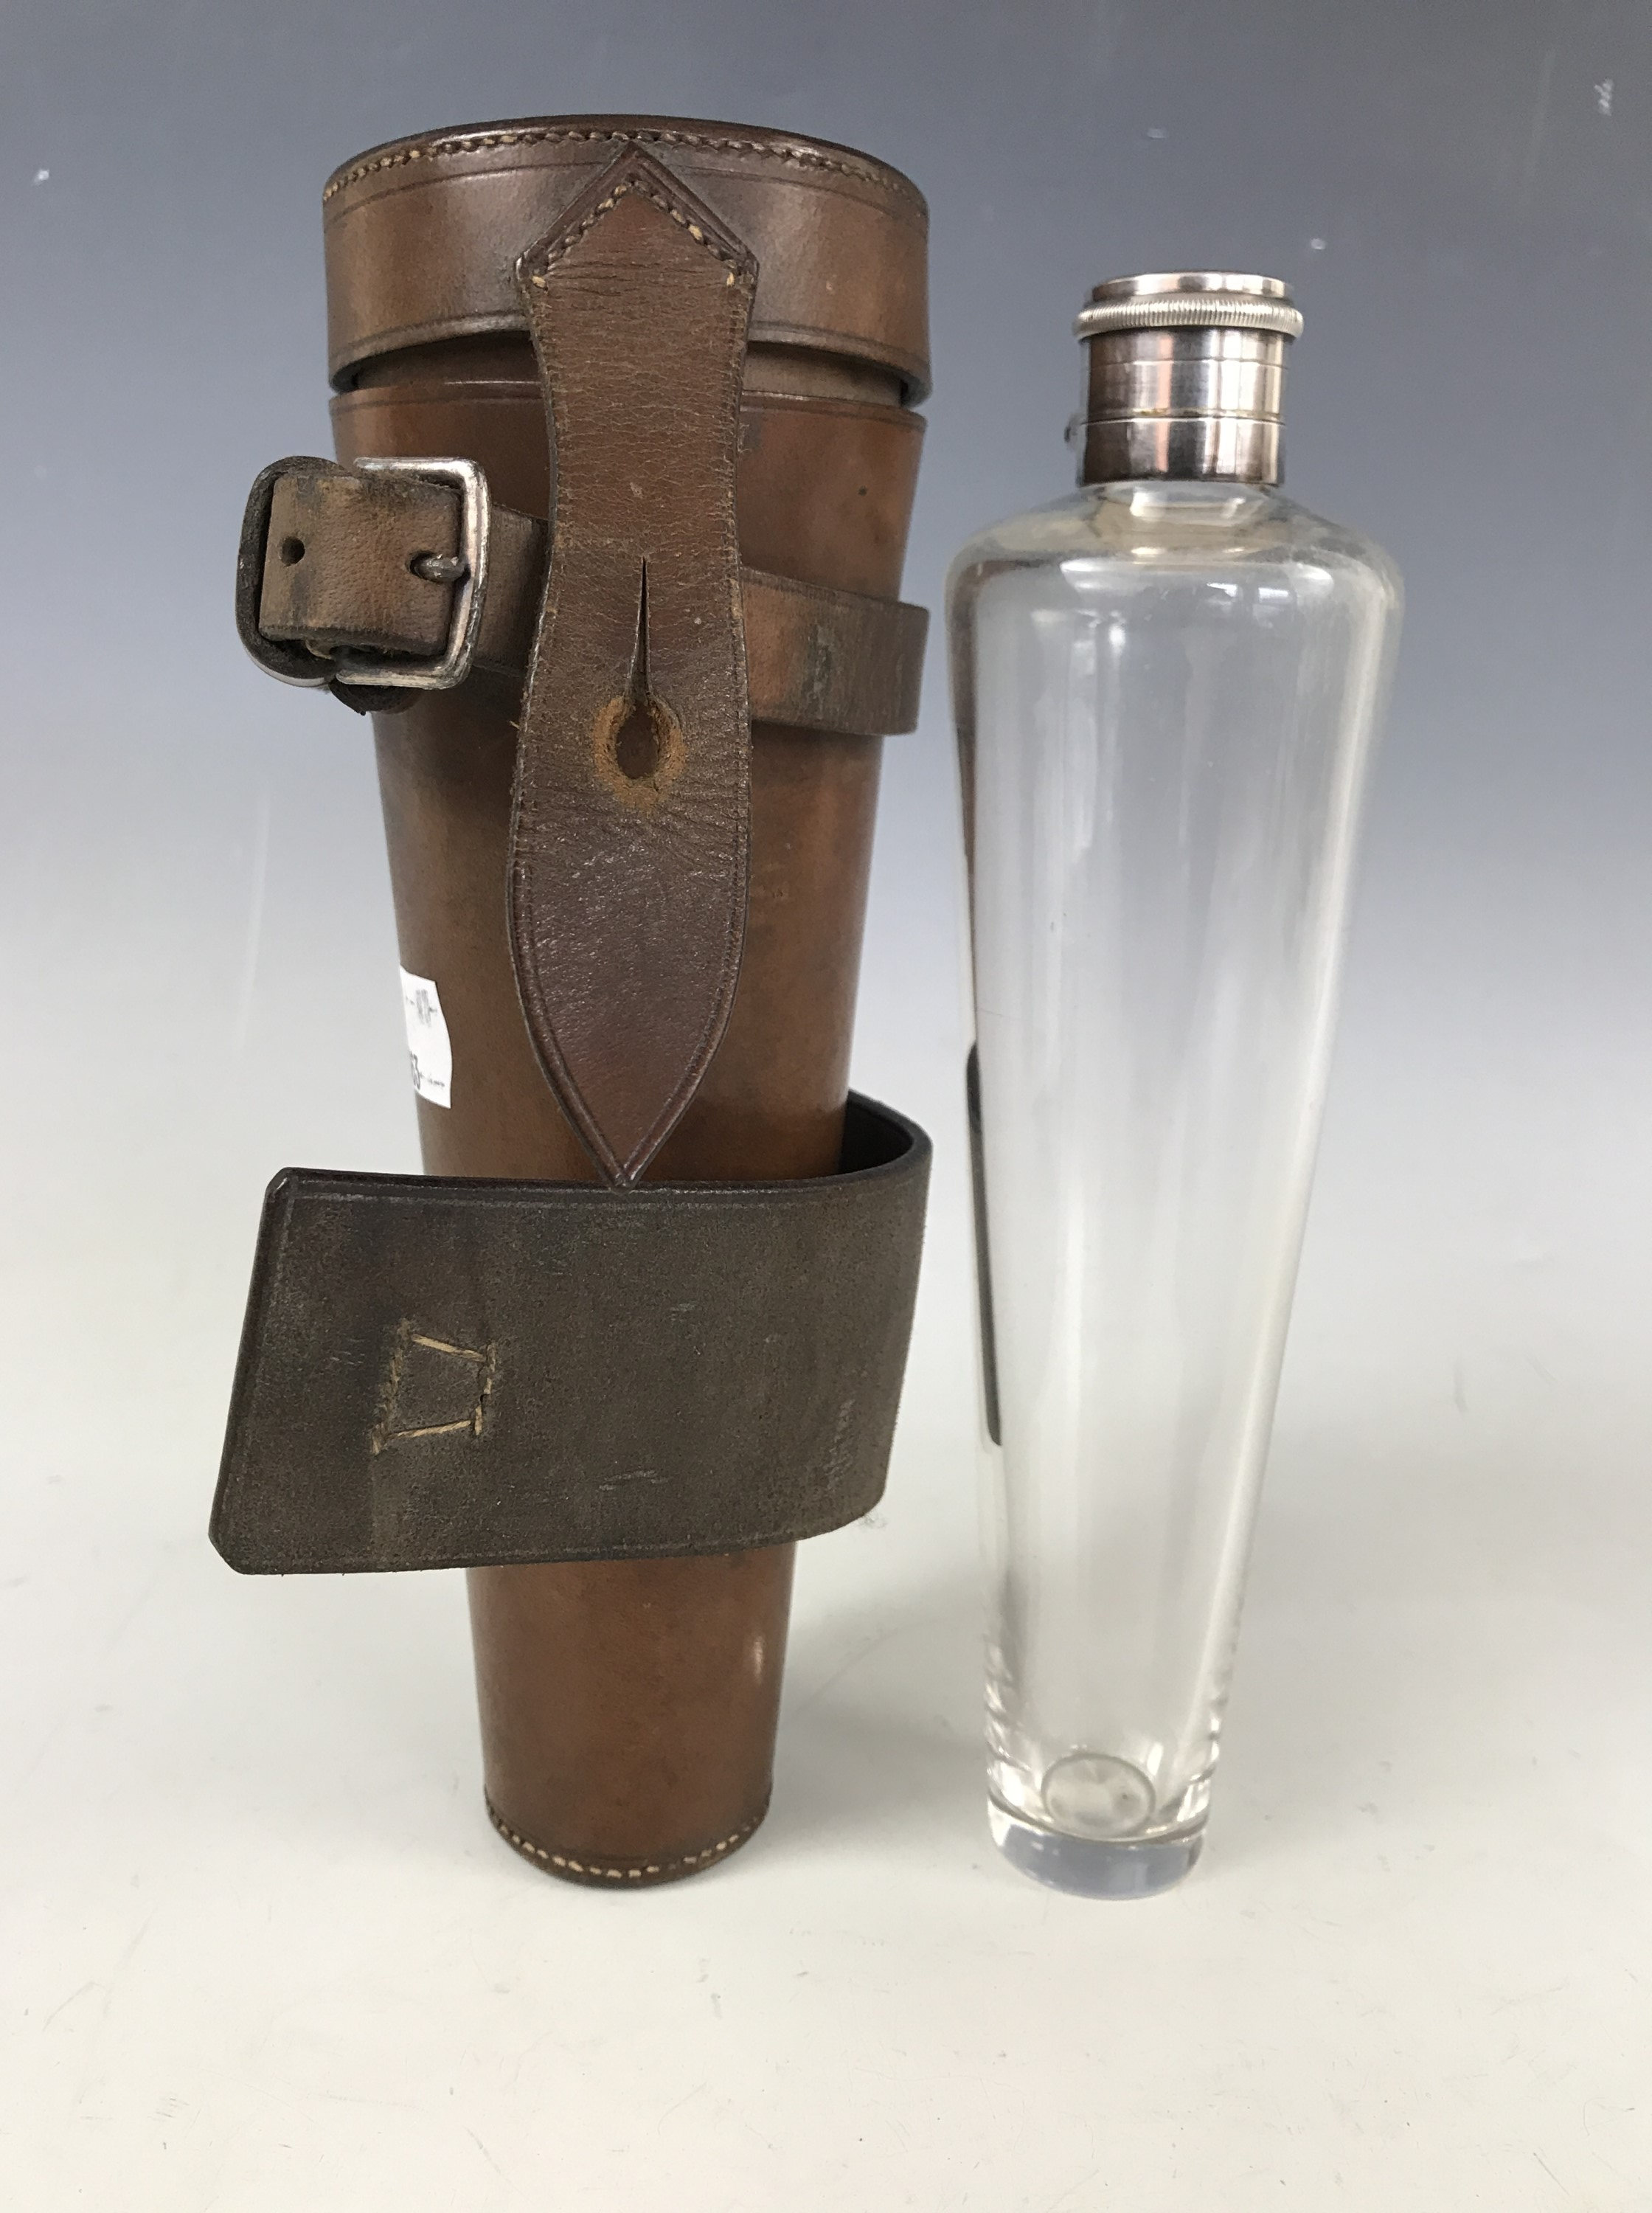 Lot 11 - A late 19th / early 20th Century Harrods riding flask and sandwich box, in electroplate and glass,